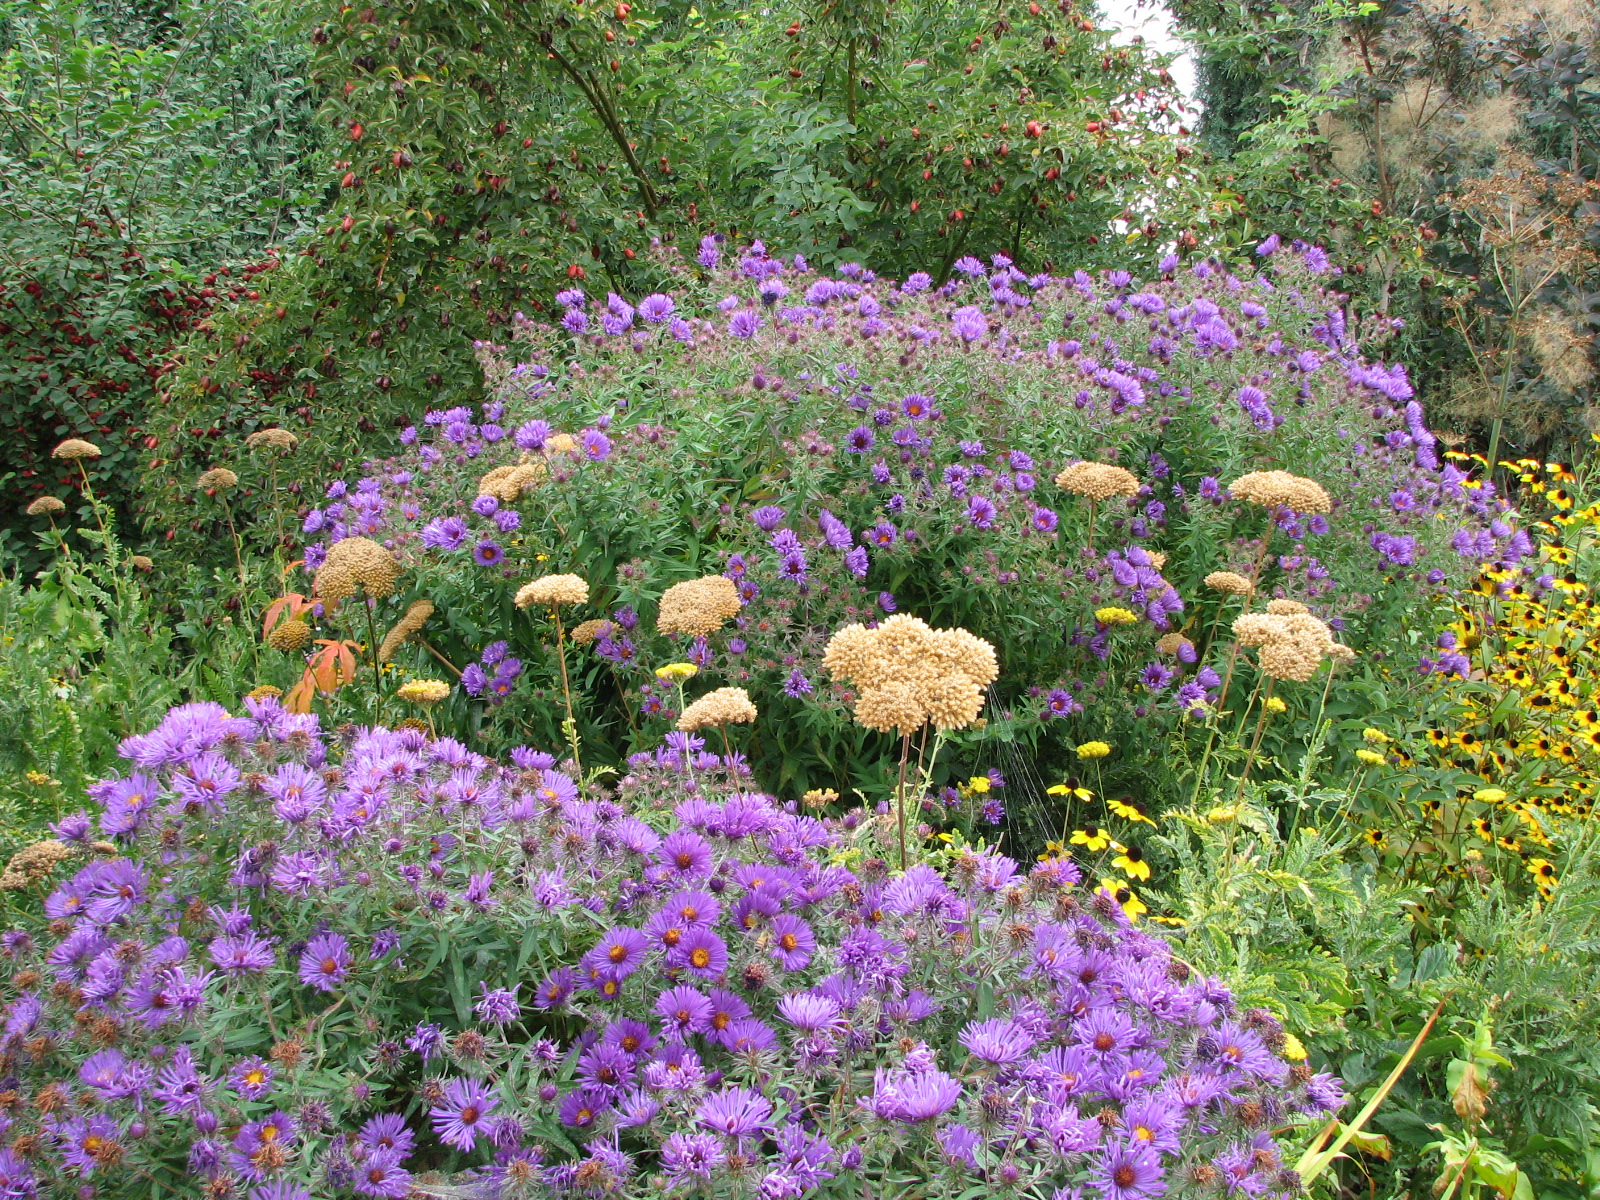 love those perennials out standing in the garden